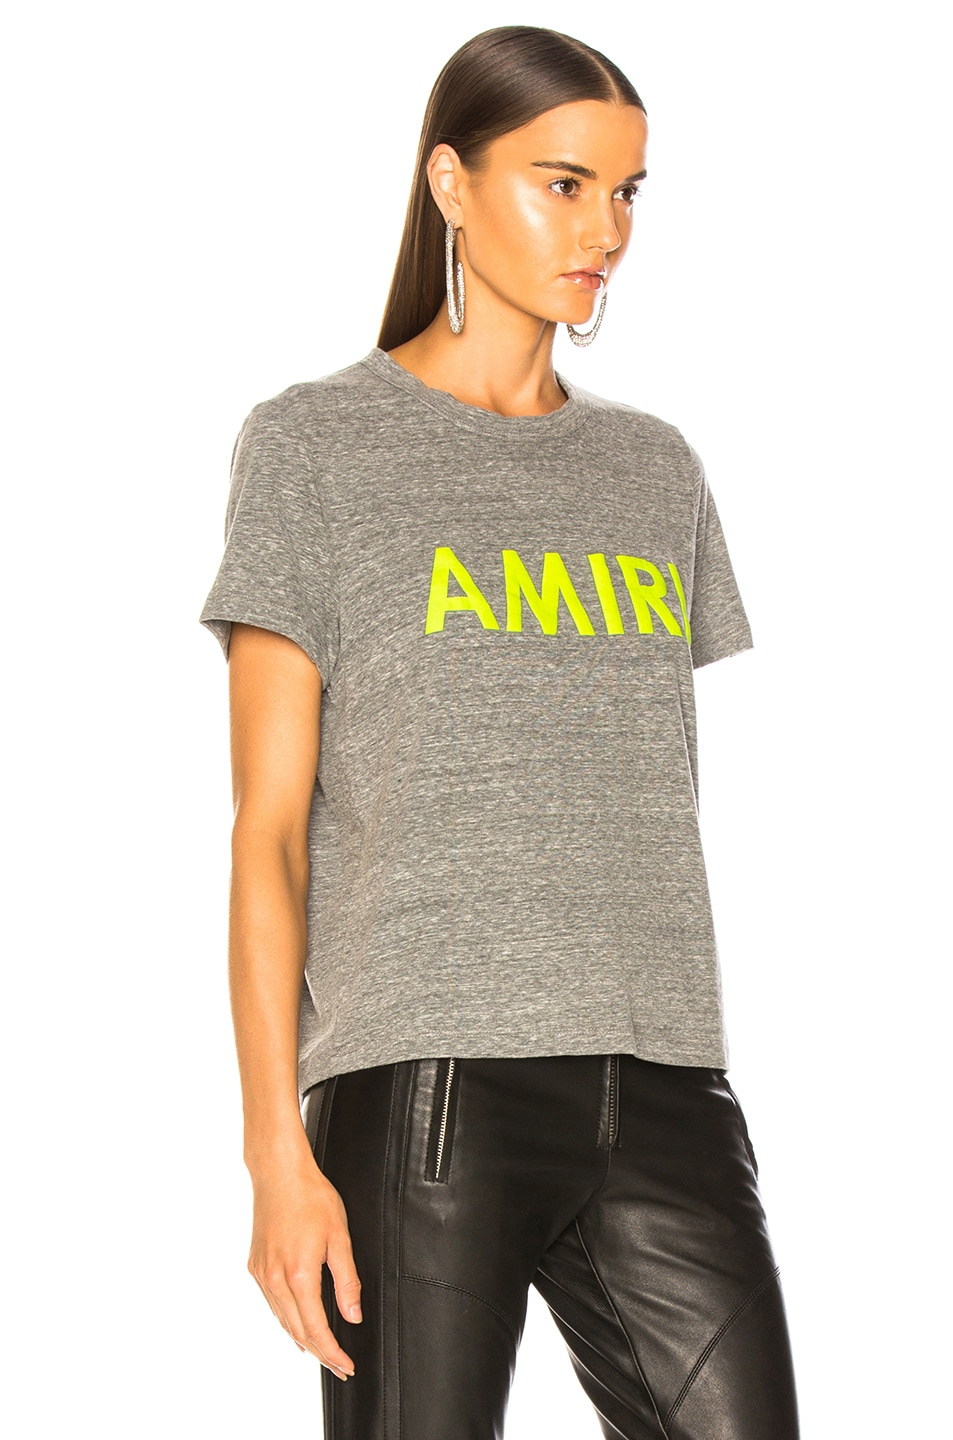 Image 3 of Amiri Tee in Heather Grey & Neon Yellow